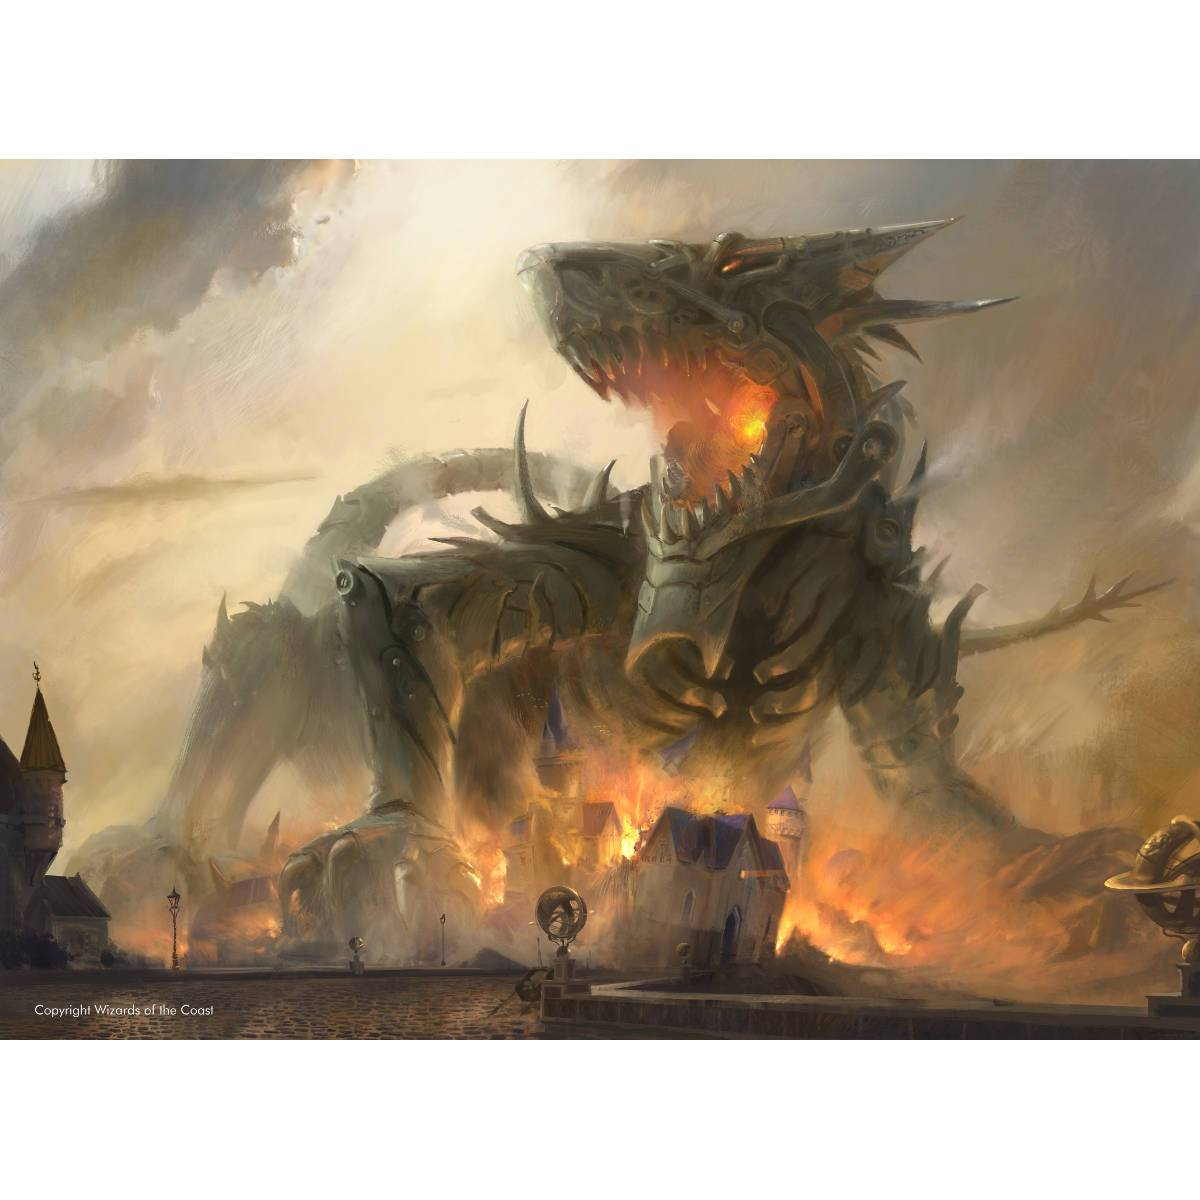 Traxos, Scourge of Kroog Print - Print - Original Magic Art - Accessories for Magic the Gathering and other card games